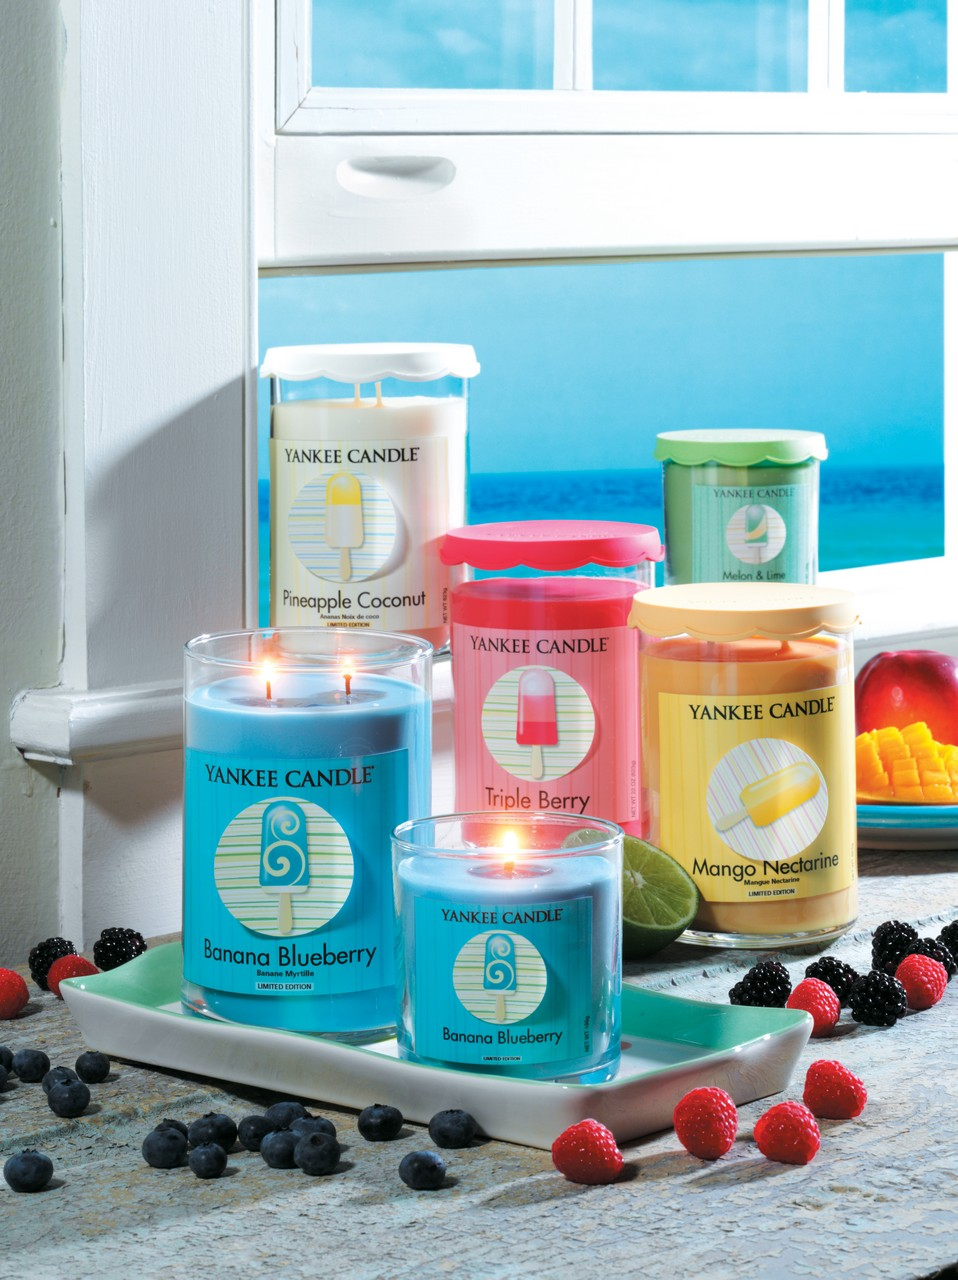 Collection Cool Pops Yankee candle 2013